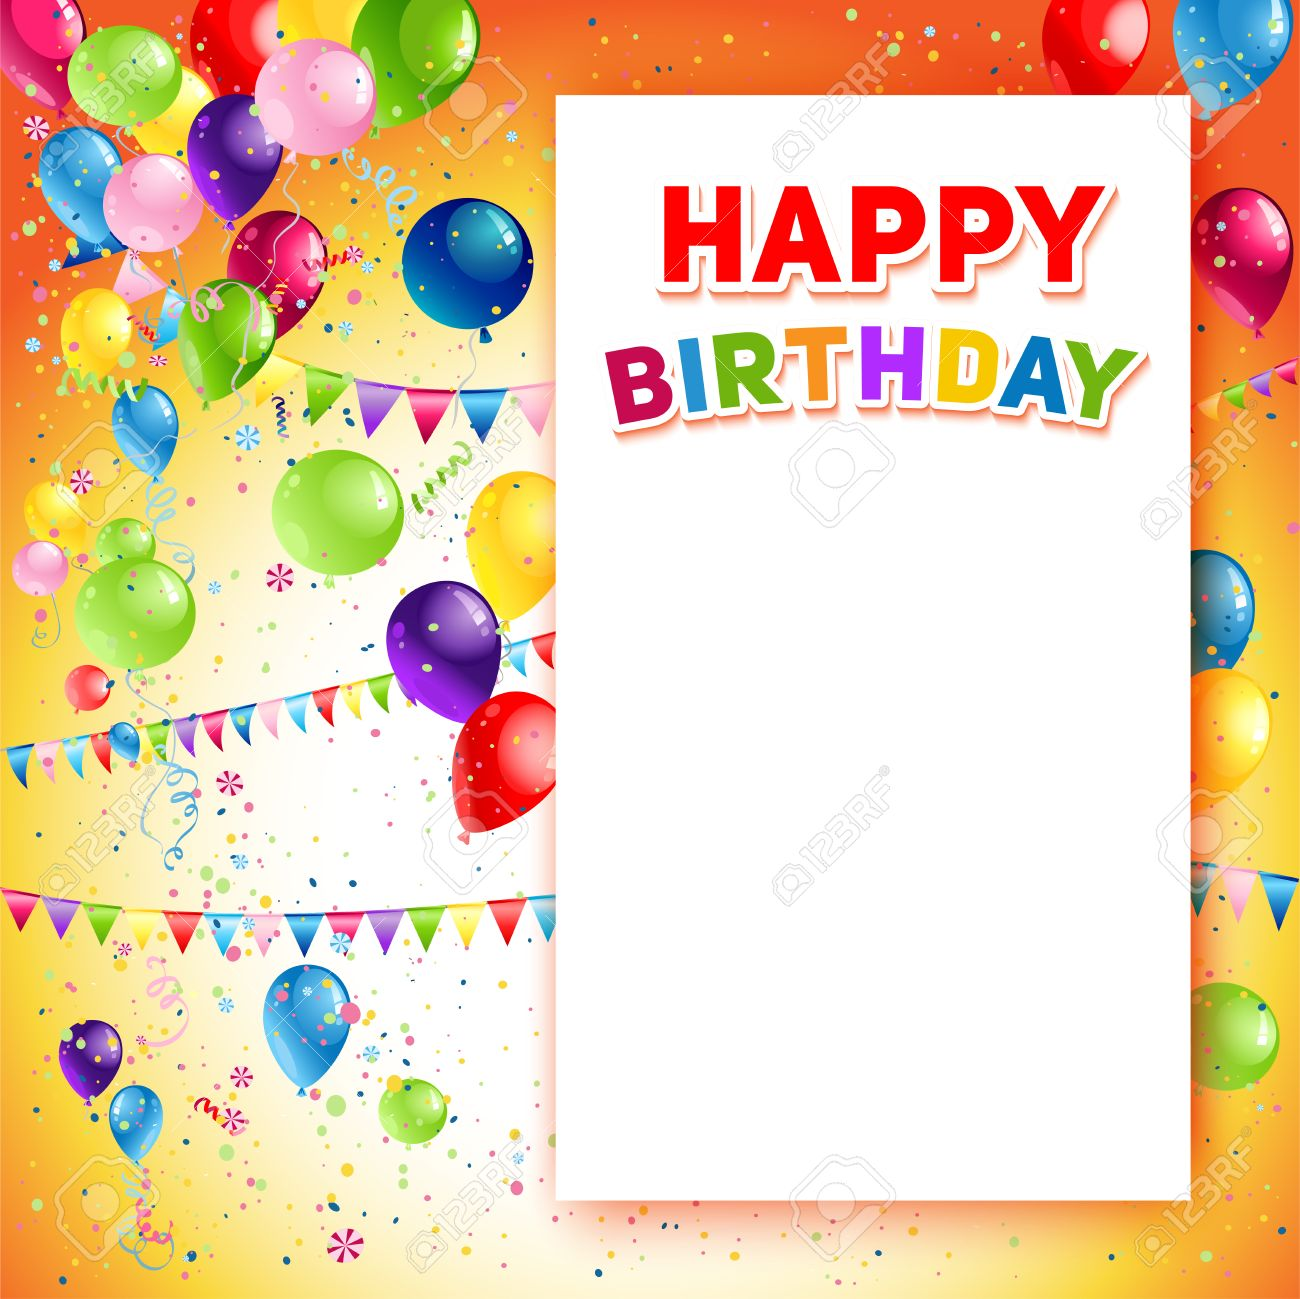 birthday poster design template ; 62469211-holiday-template-for-design-banner-ticket-leaflet-card-poster-and-so-on-happy-birthday-background-an